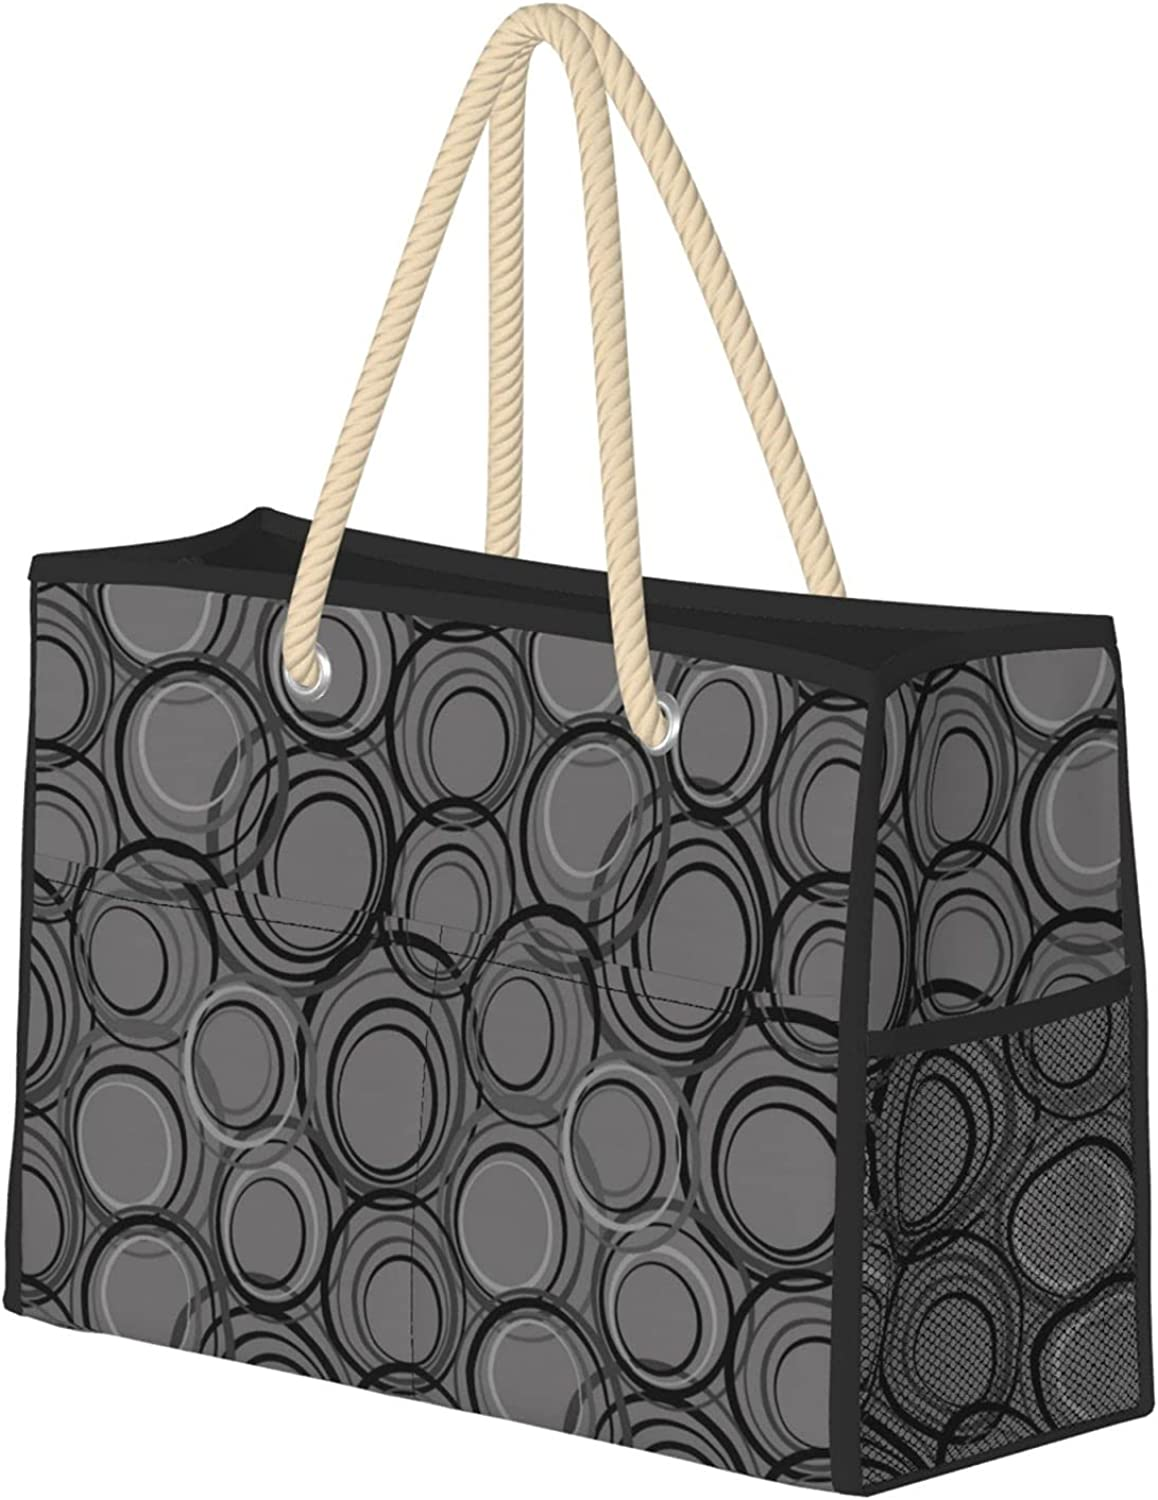 Black And Grey Selling and selling Women Beach Reusable Bag Travel Utility 5% OFF Tote